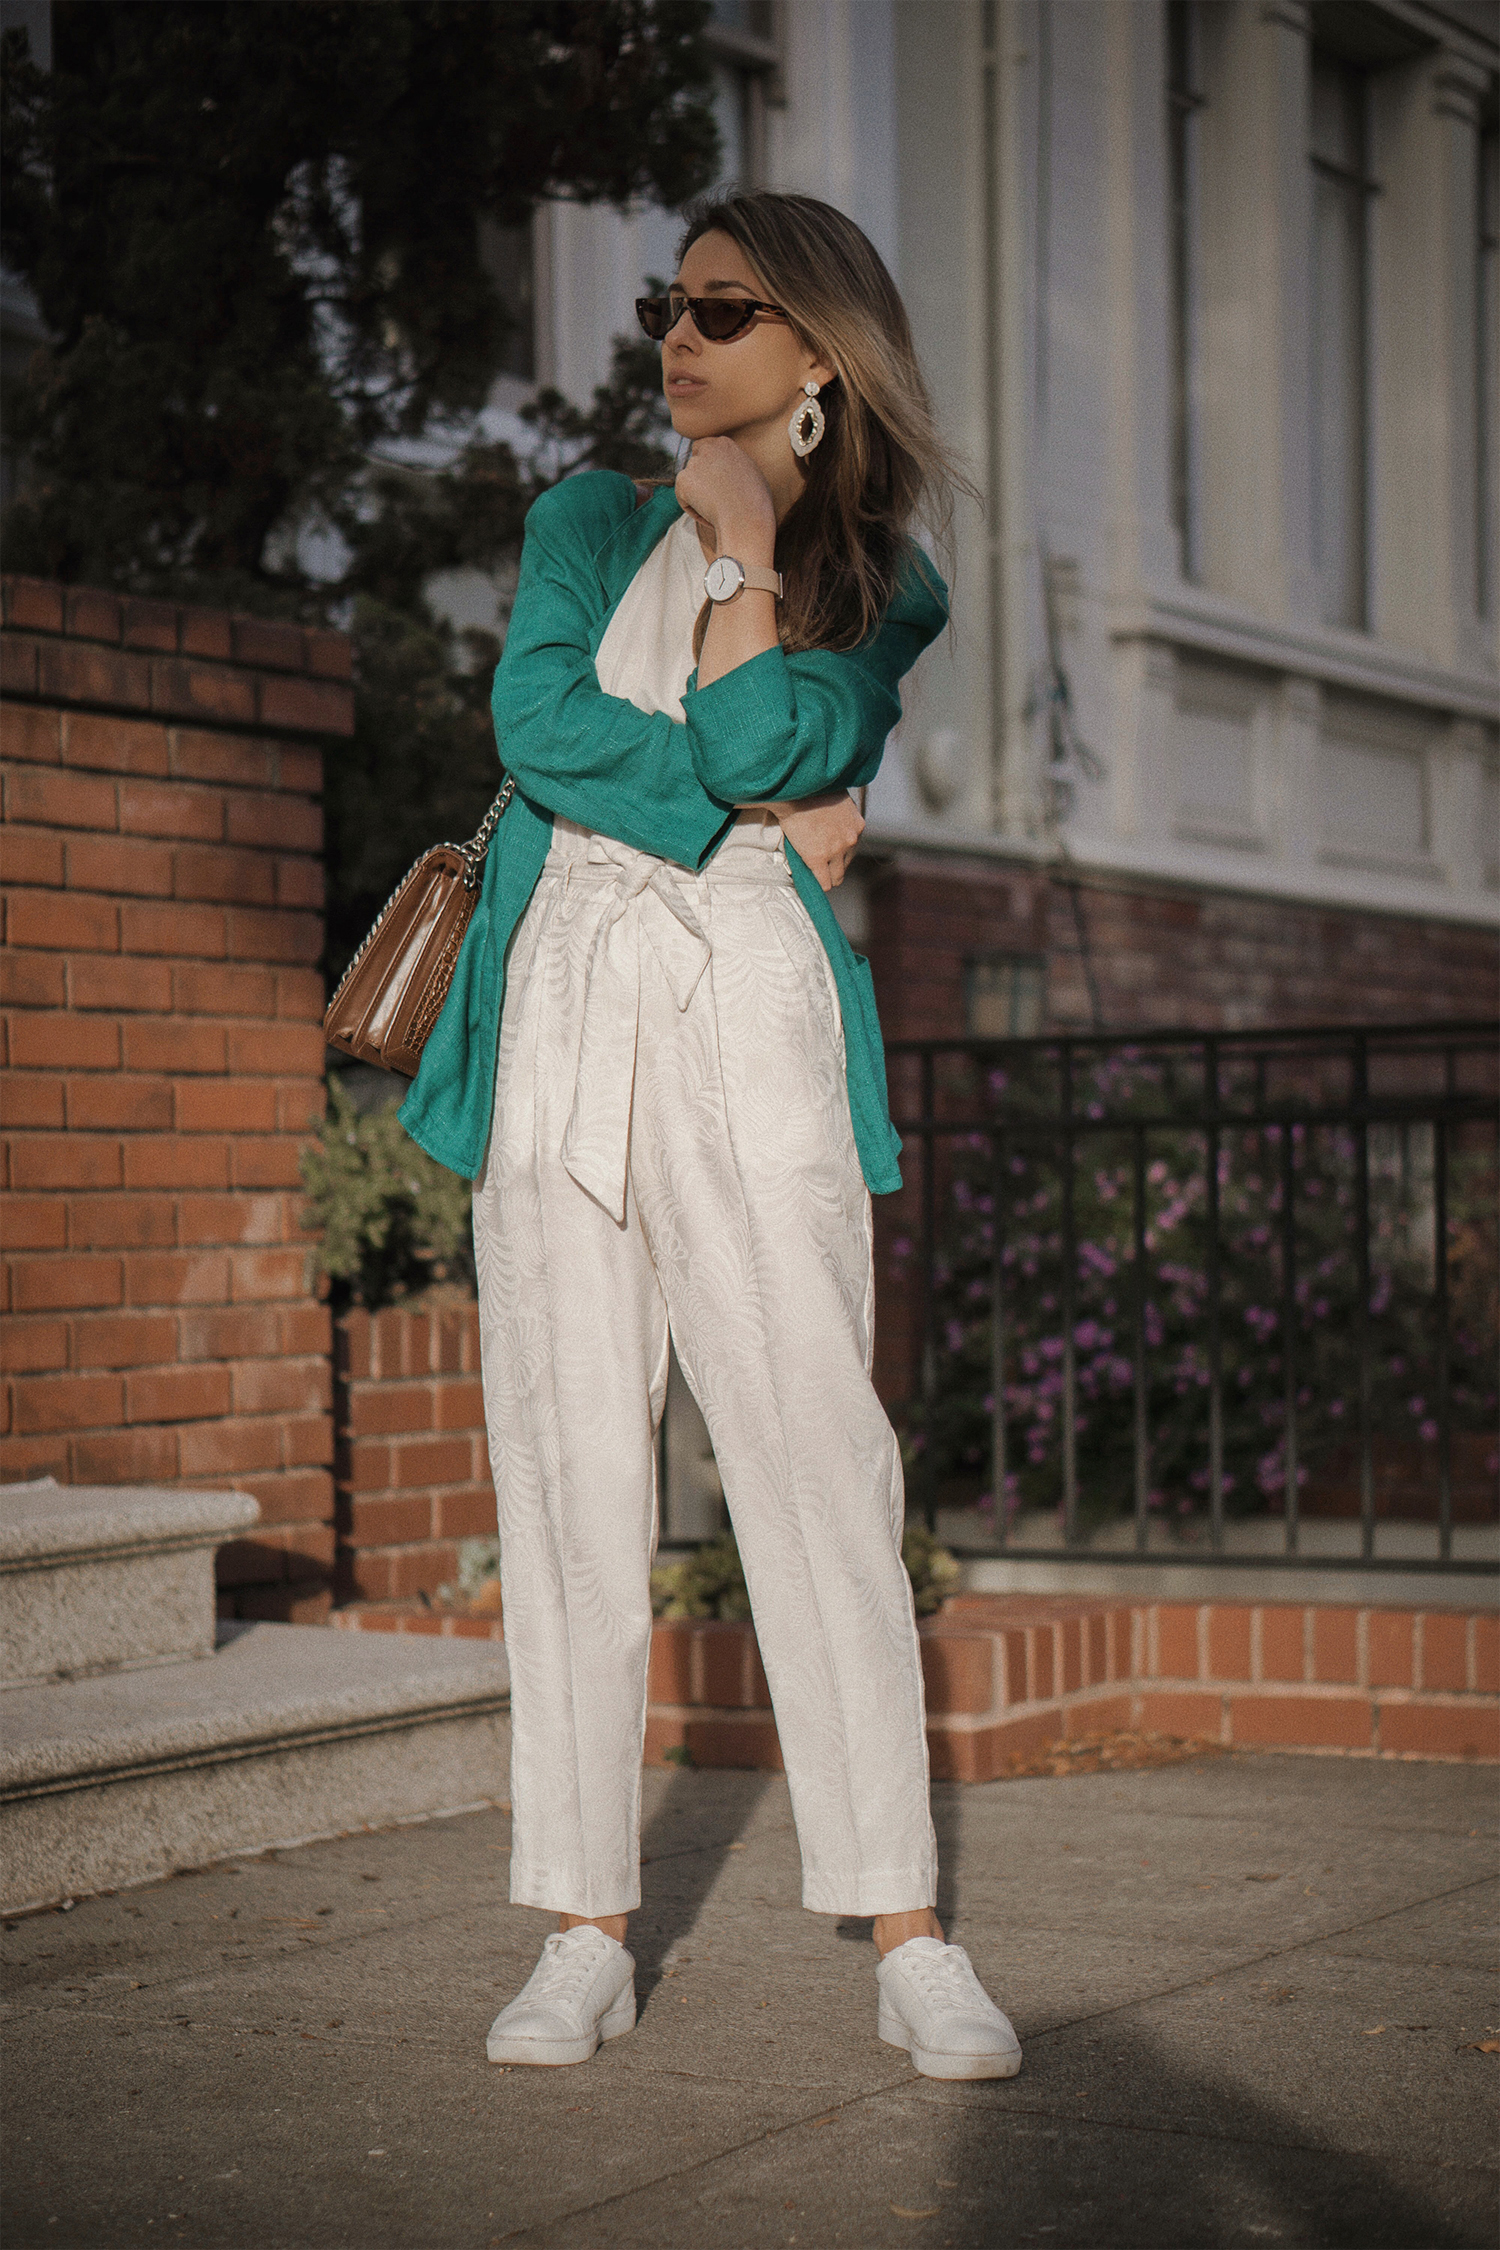 highwaisted_pants_green_jacket_thewhiteocean_lenajuice_09